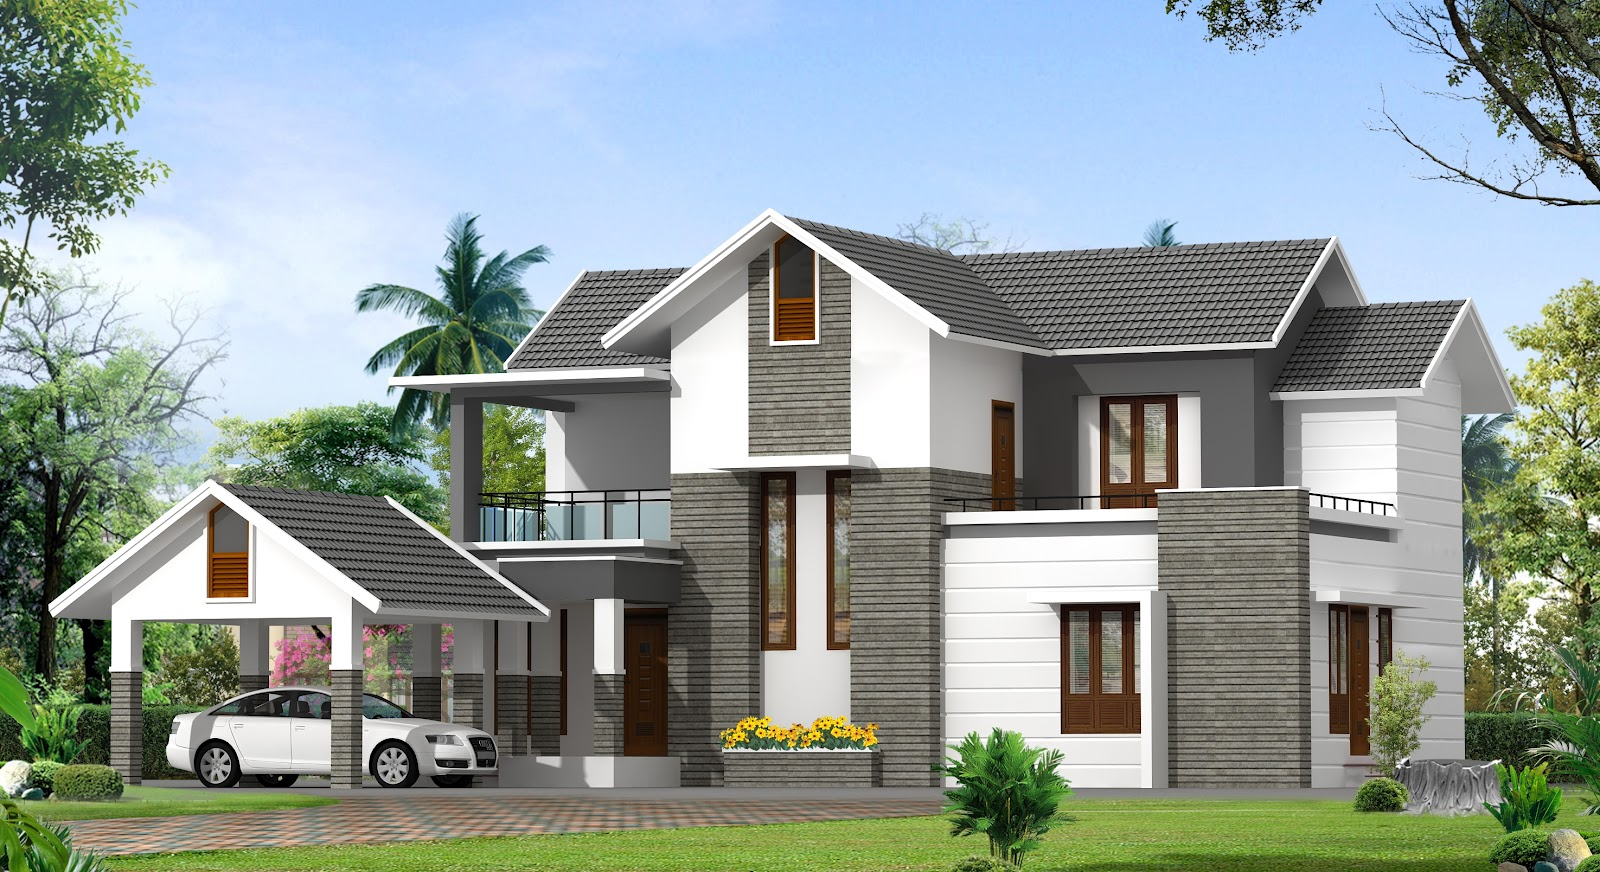 design 3D models and plans of buildings